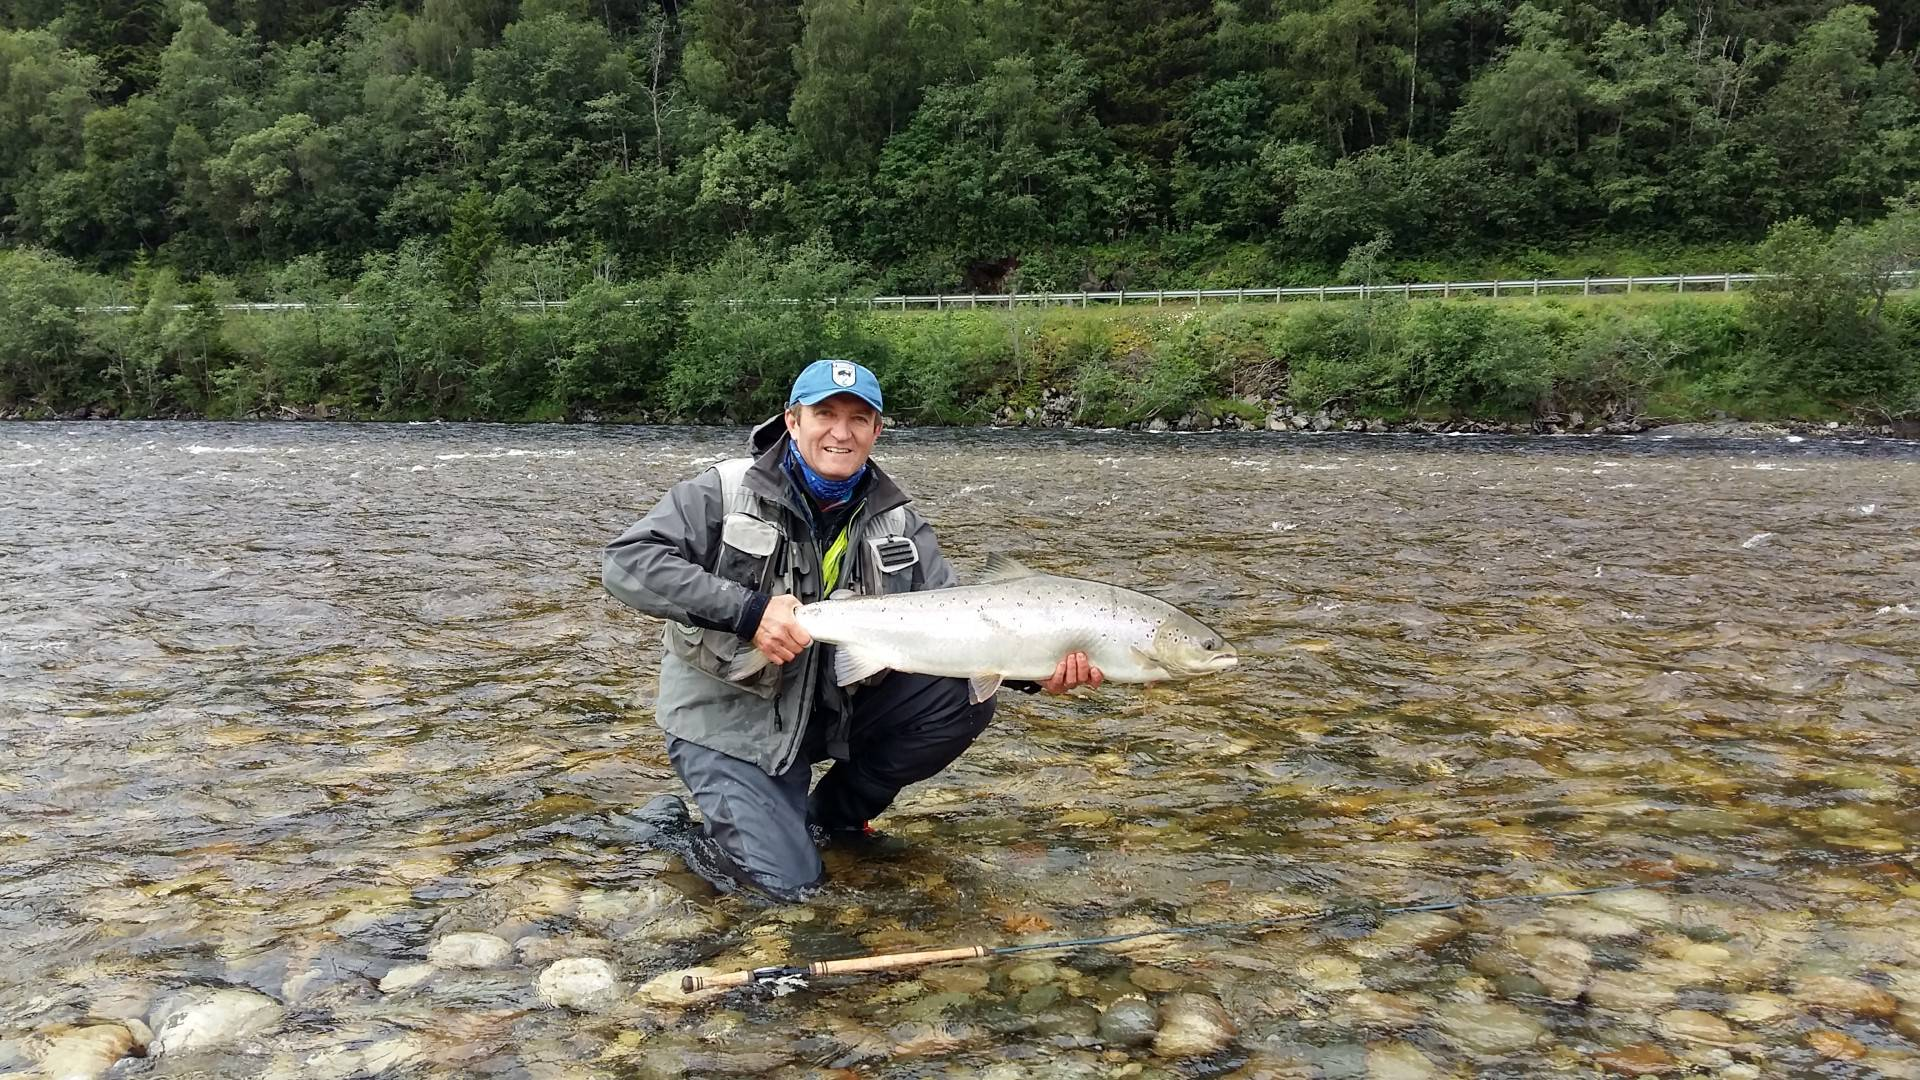 Francois Deloup with his beautiful salmon from Beat A1